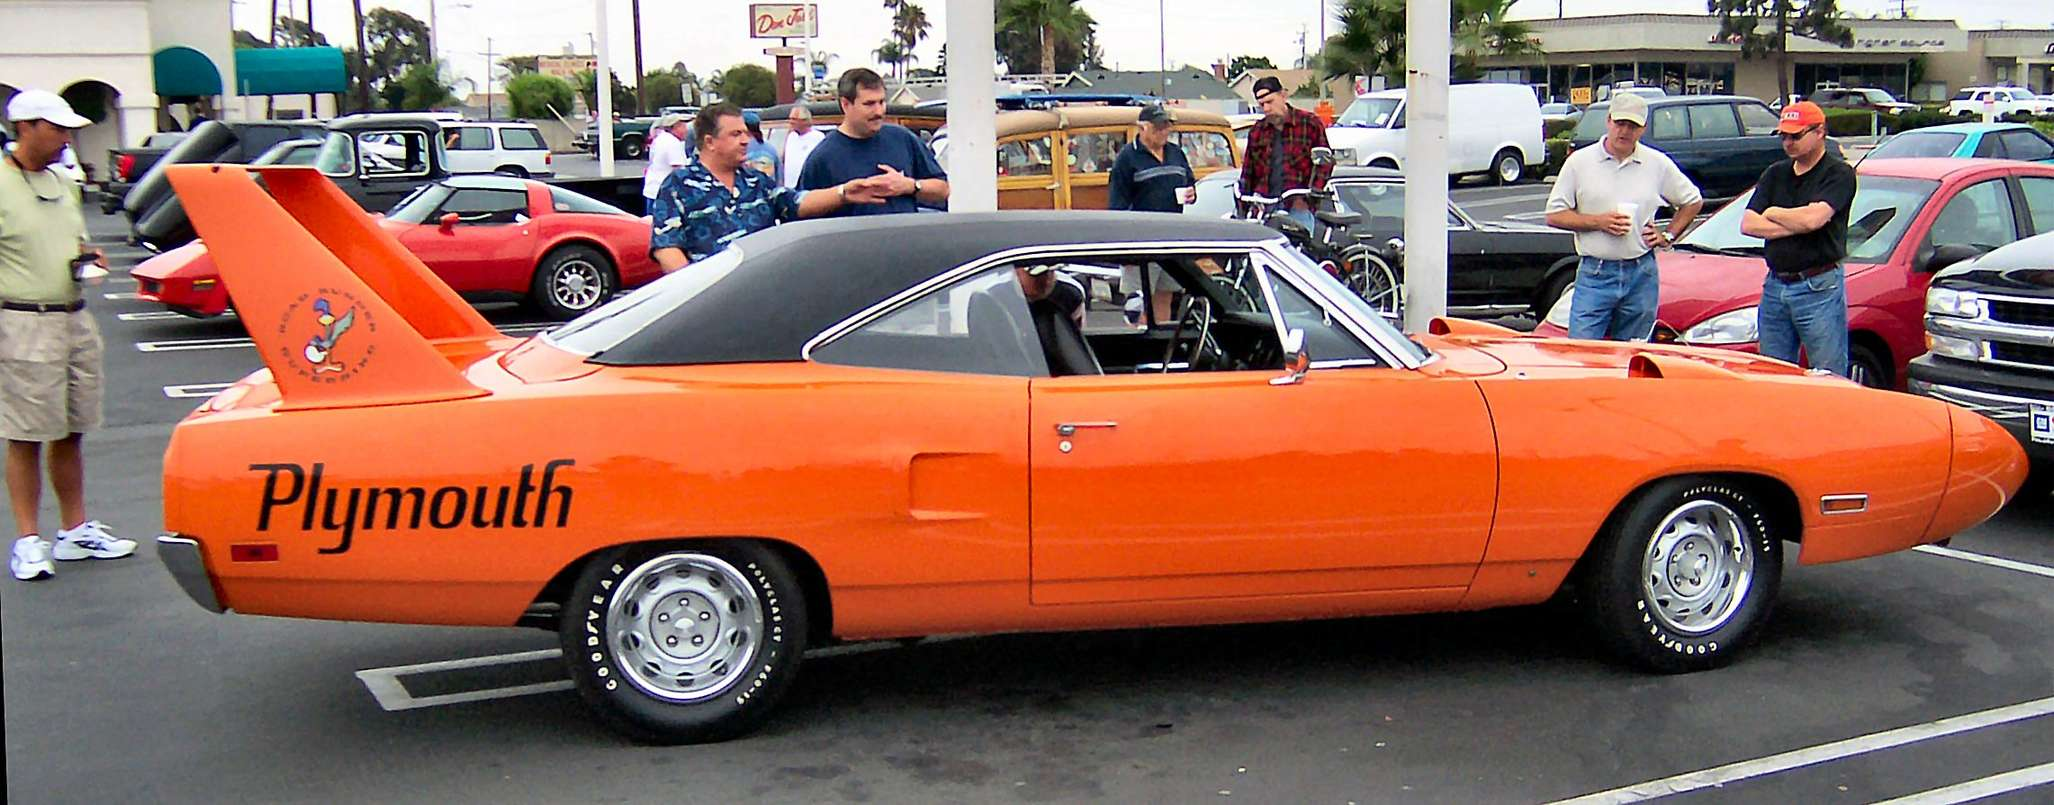 Plymouth Roadrunner #7331126